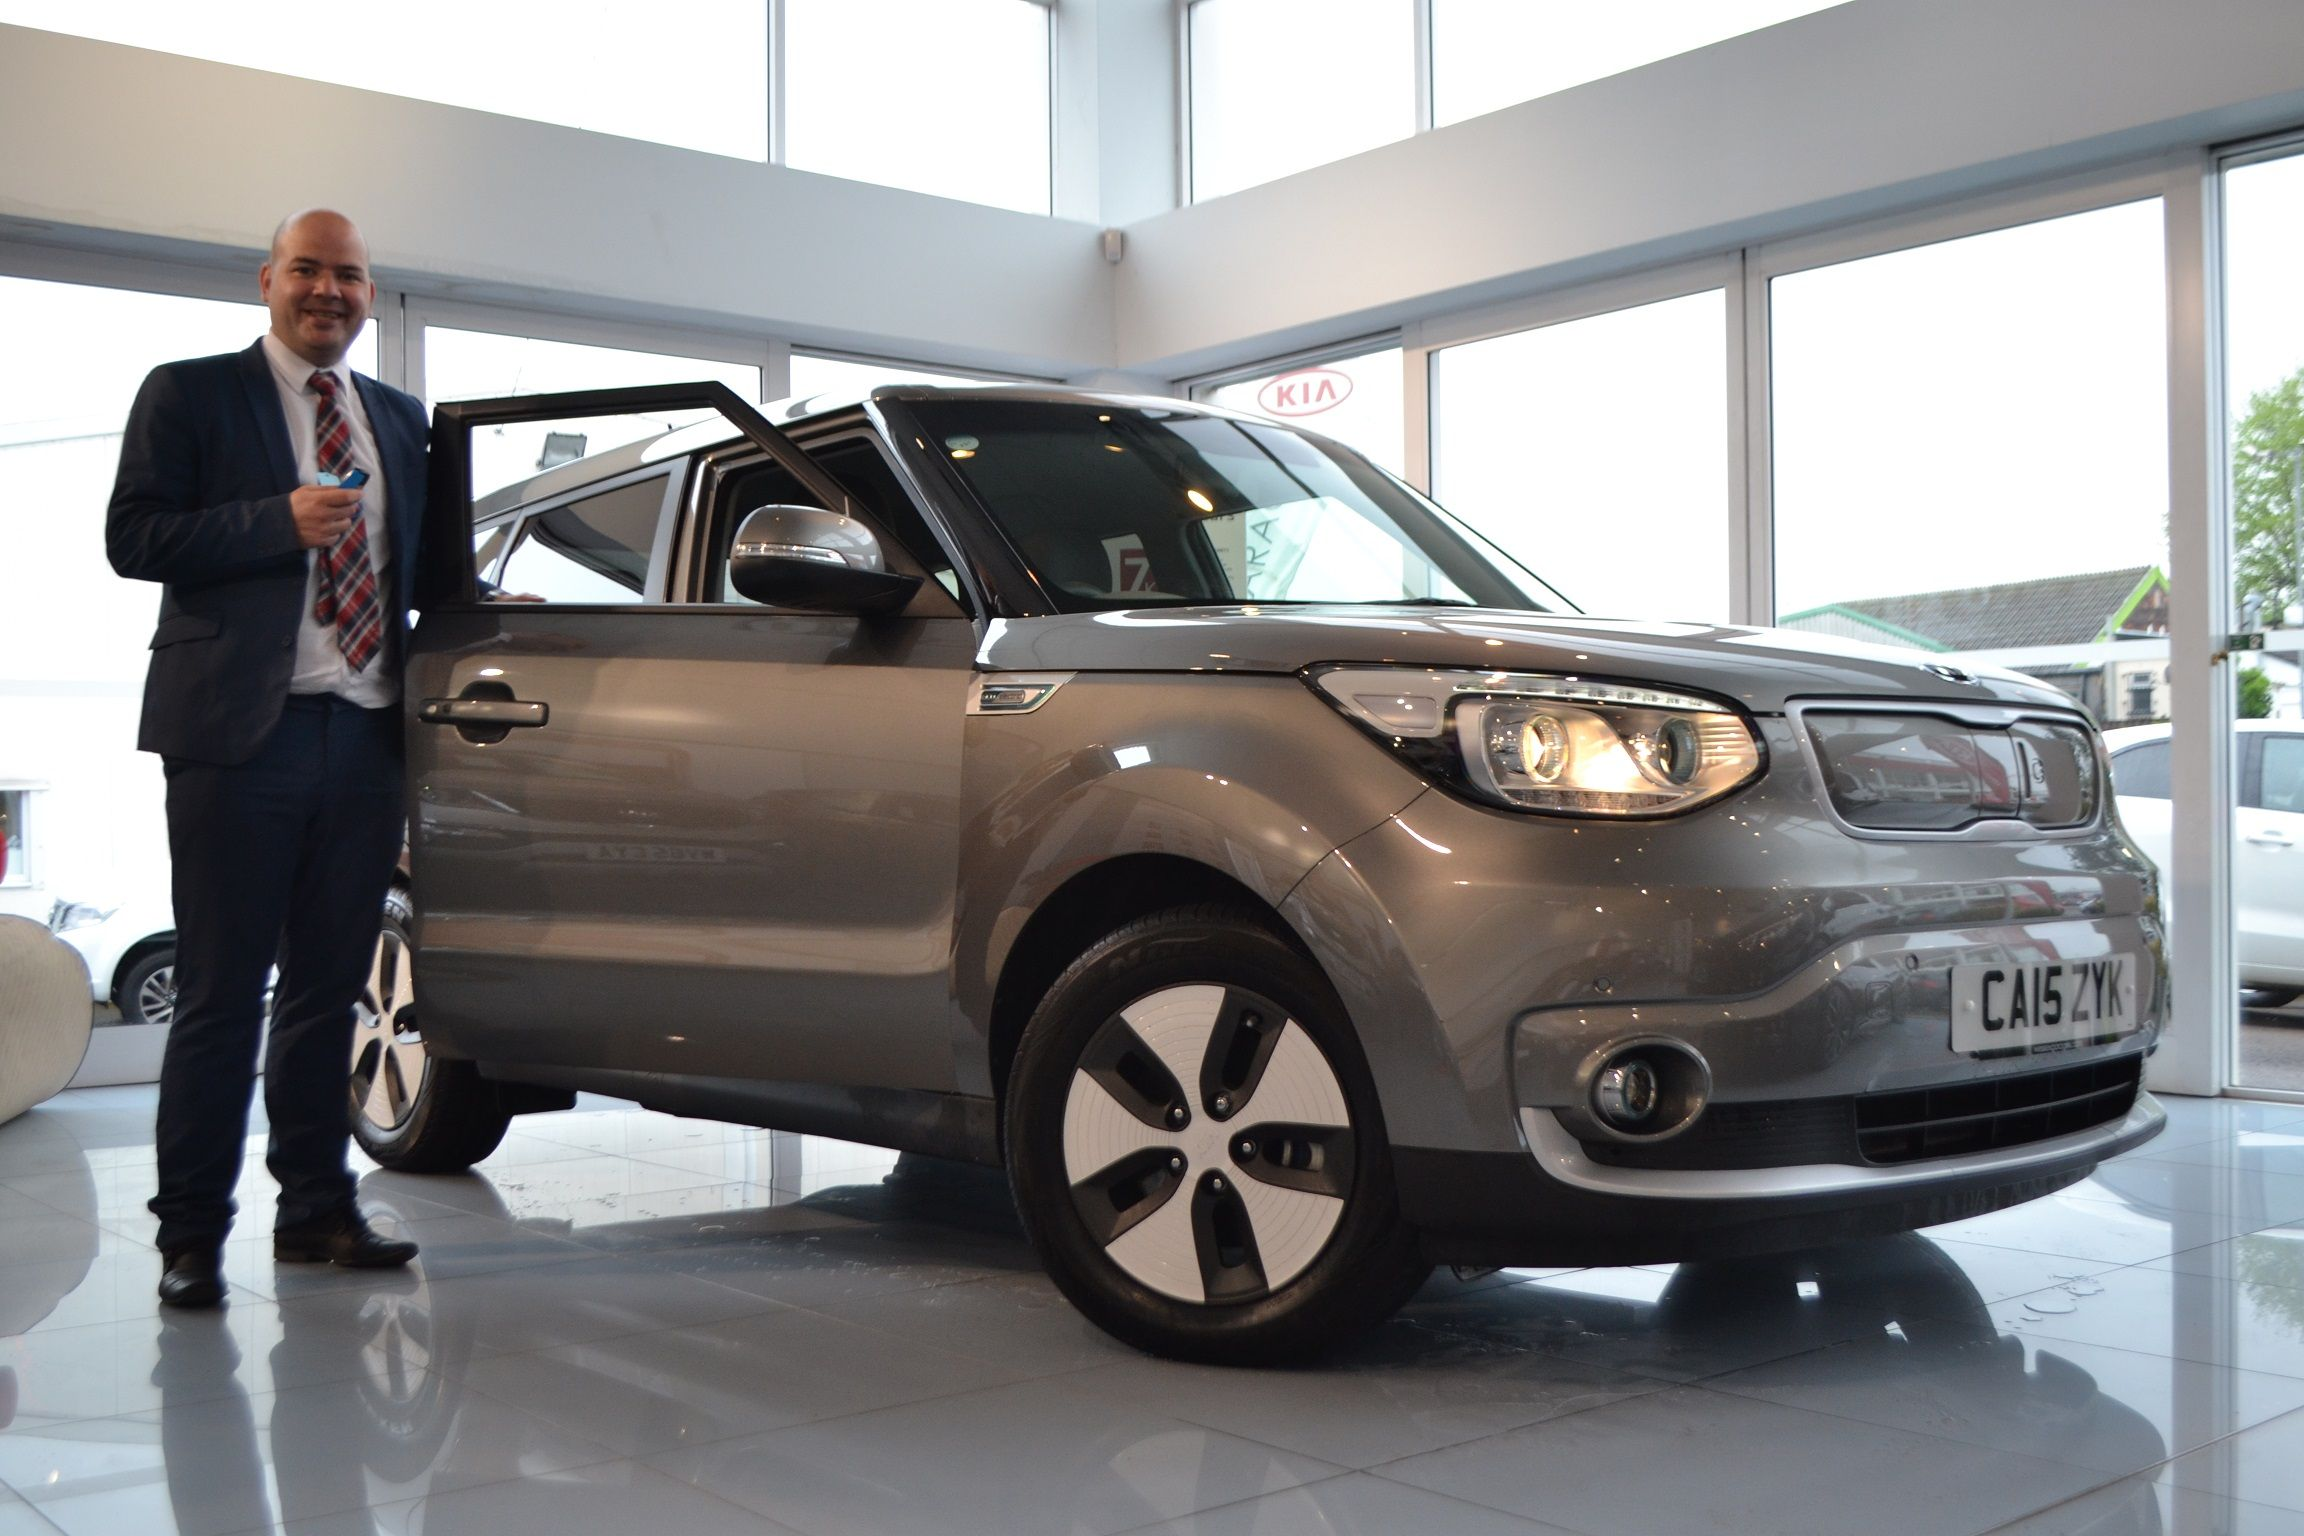 The Kia Motors UK SoulEV has been named as one of the